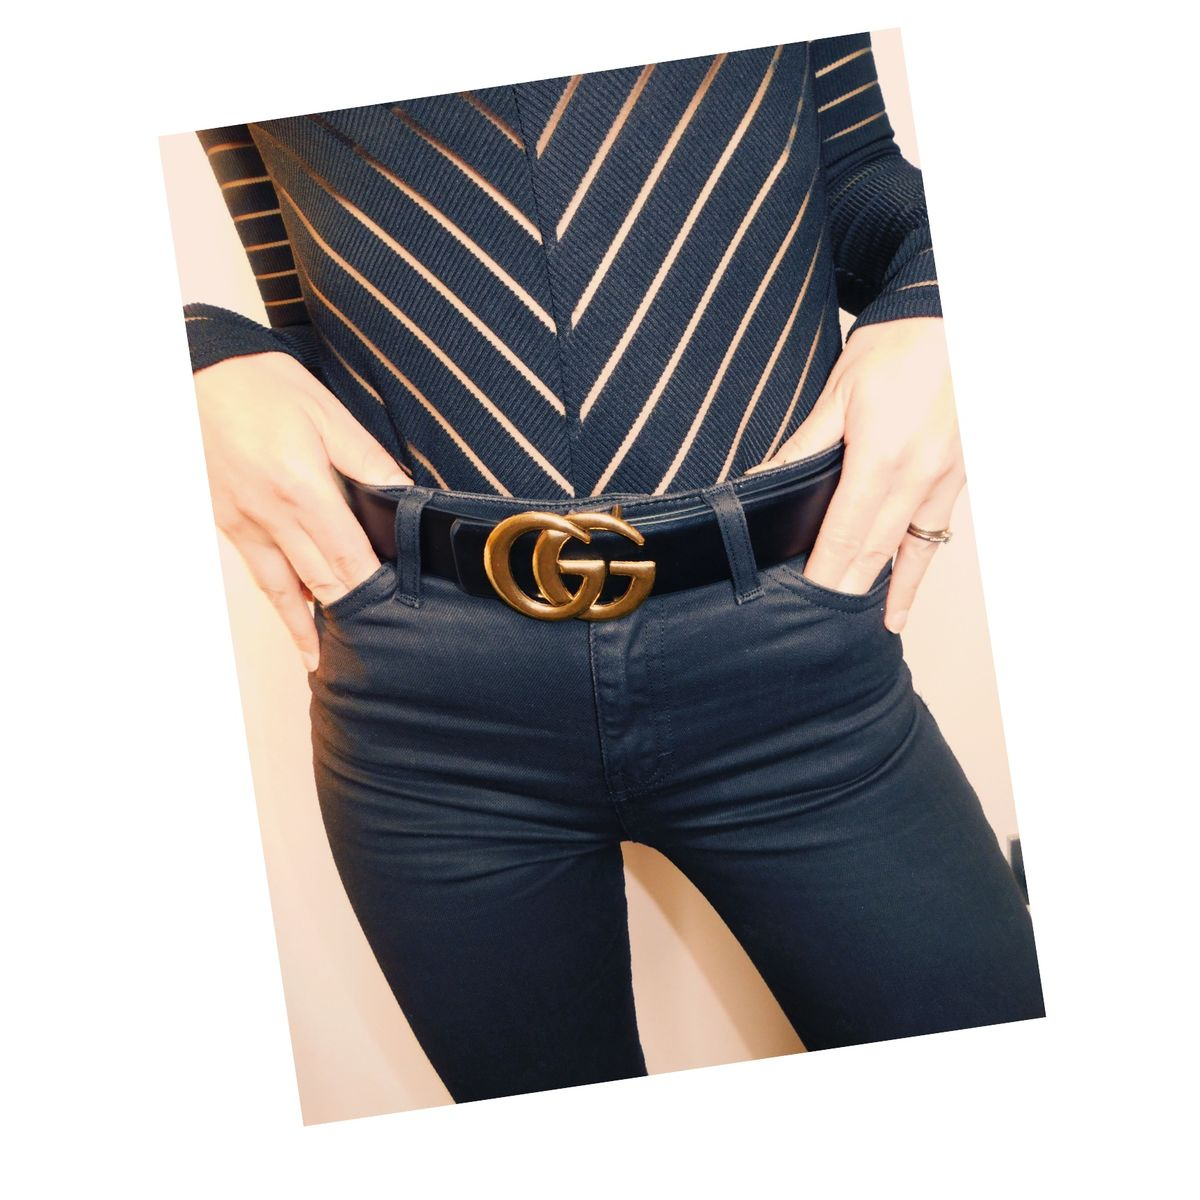 THE G BELT  - product images 1 of 1